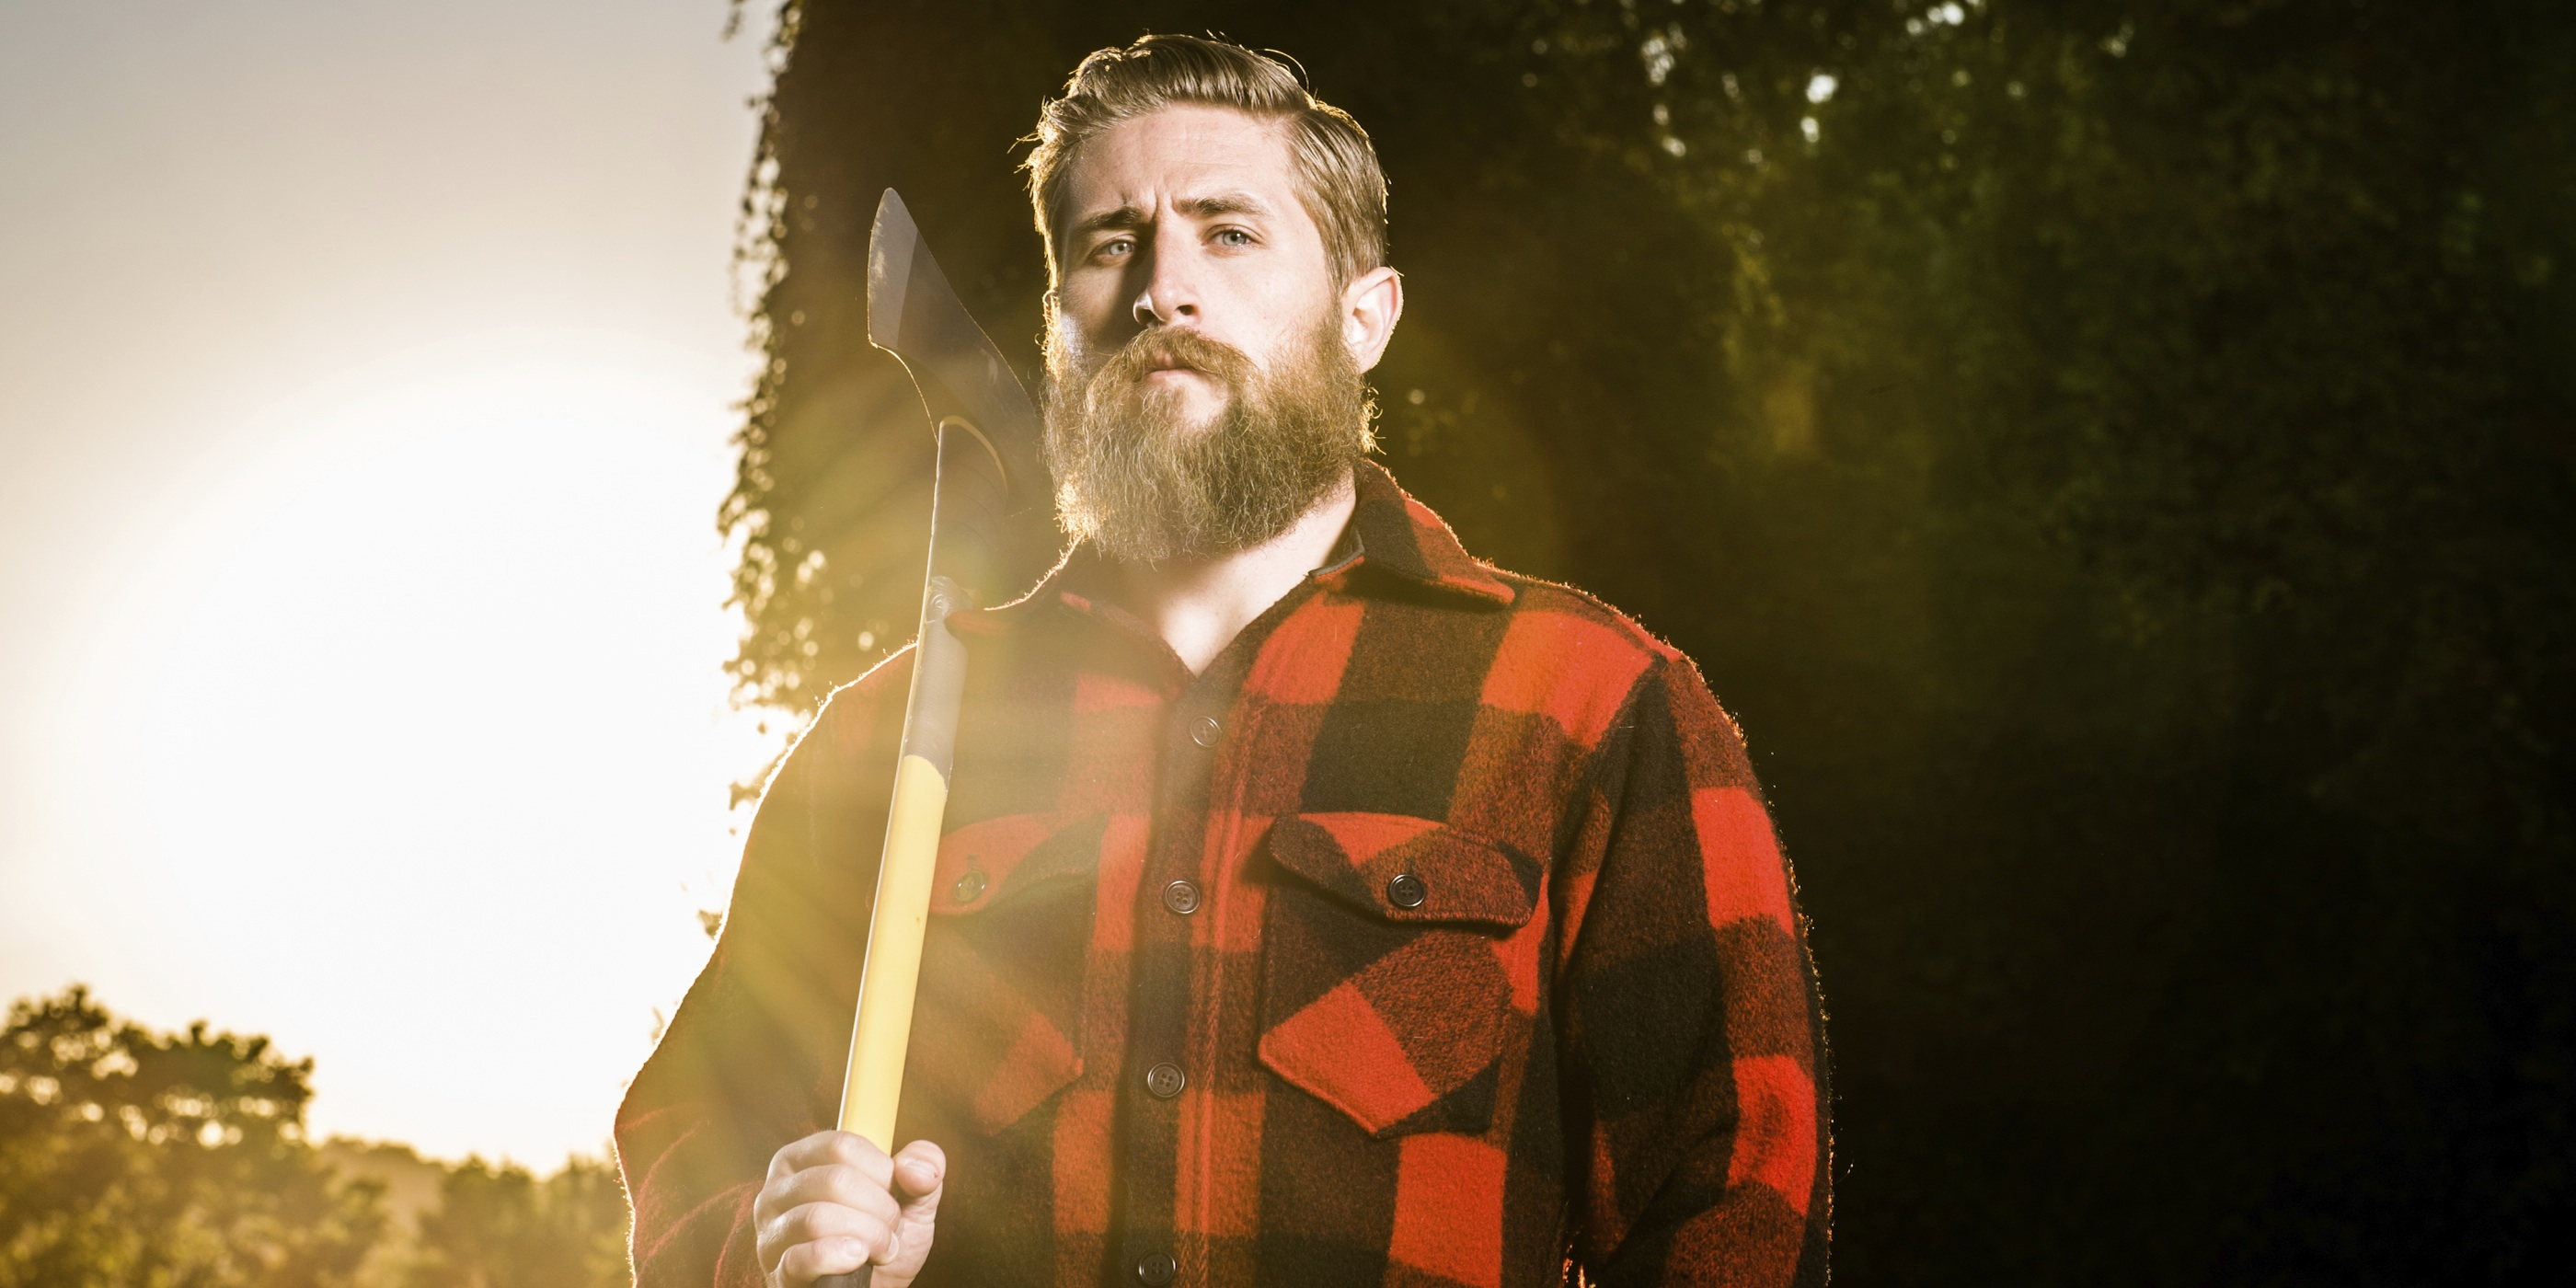 Image source: http://www.thebolditalic.com/articles/6235-the-lumbersexual-is-here-to-chop-down-metrosexuals